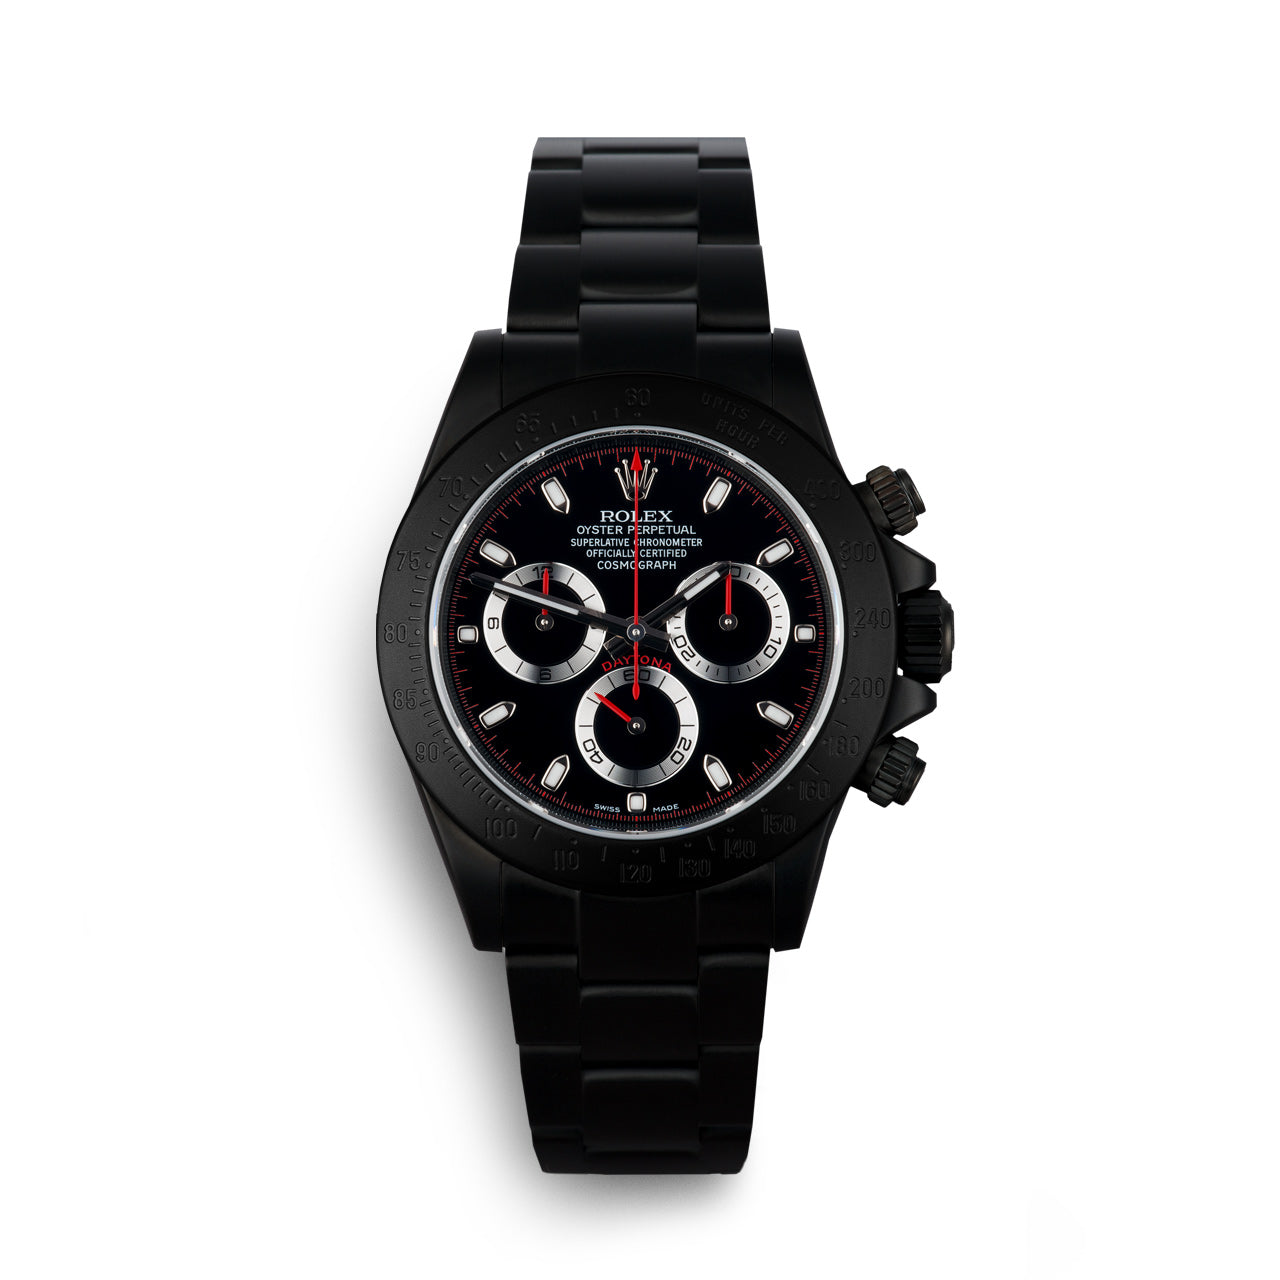 Pro Hunter Rolex Daytona Stealth Watch